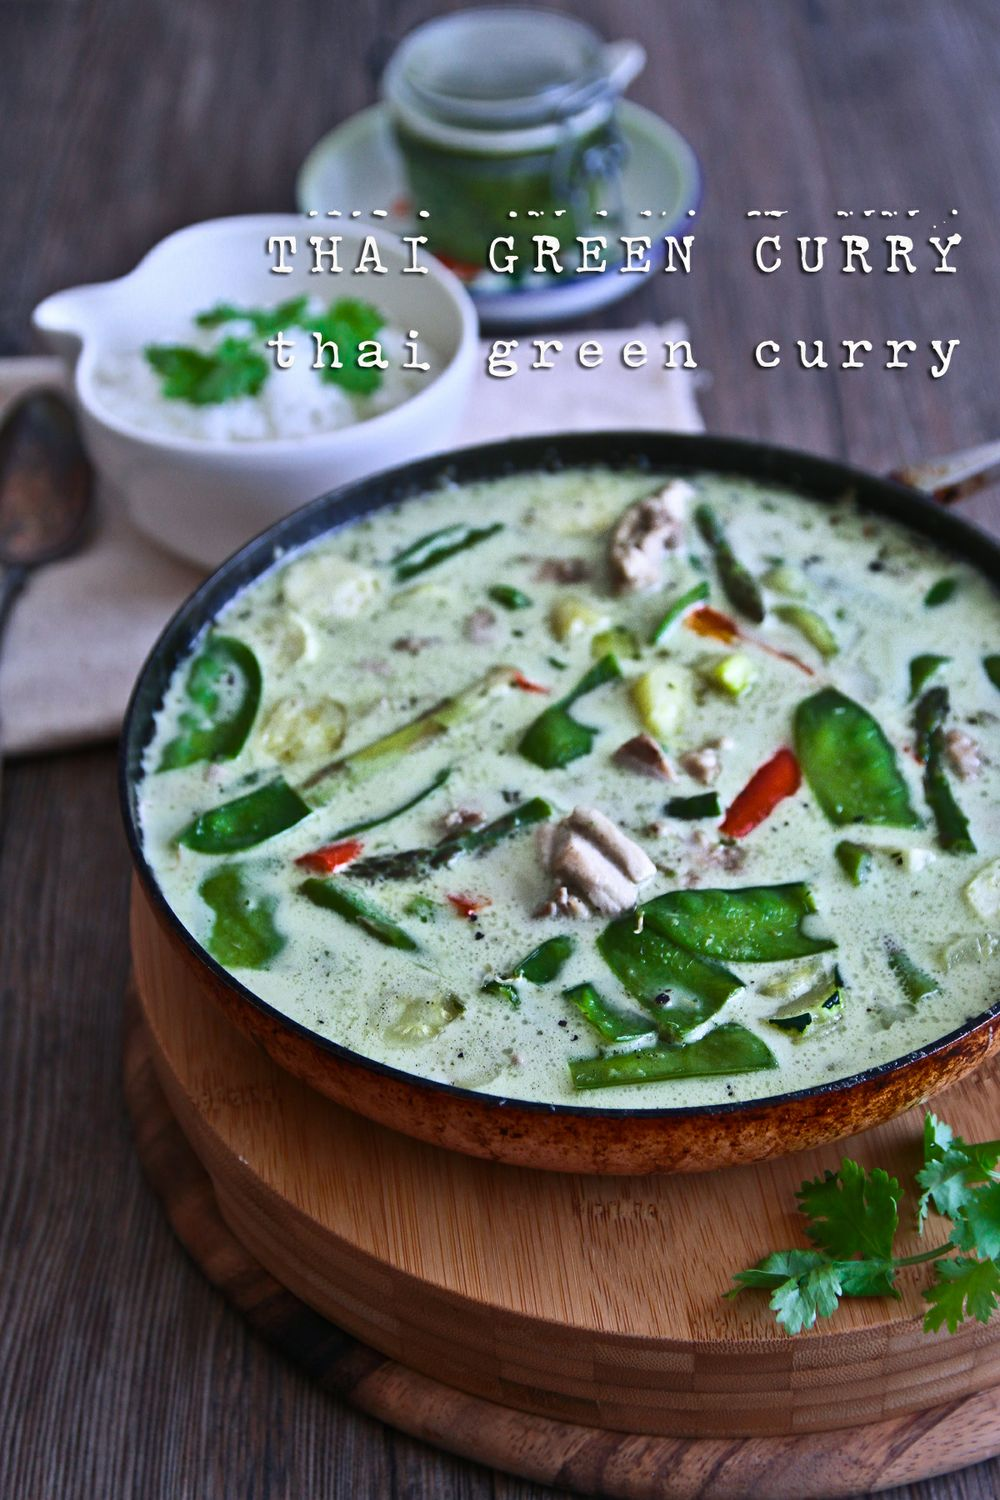 m-green-curry-1-3